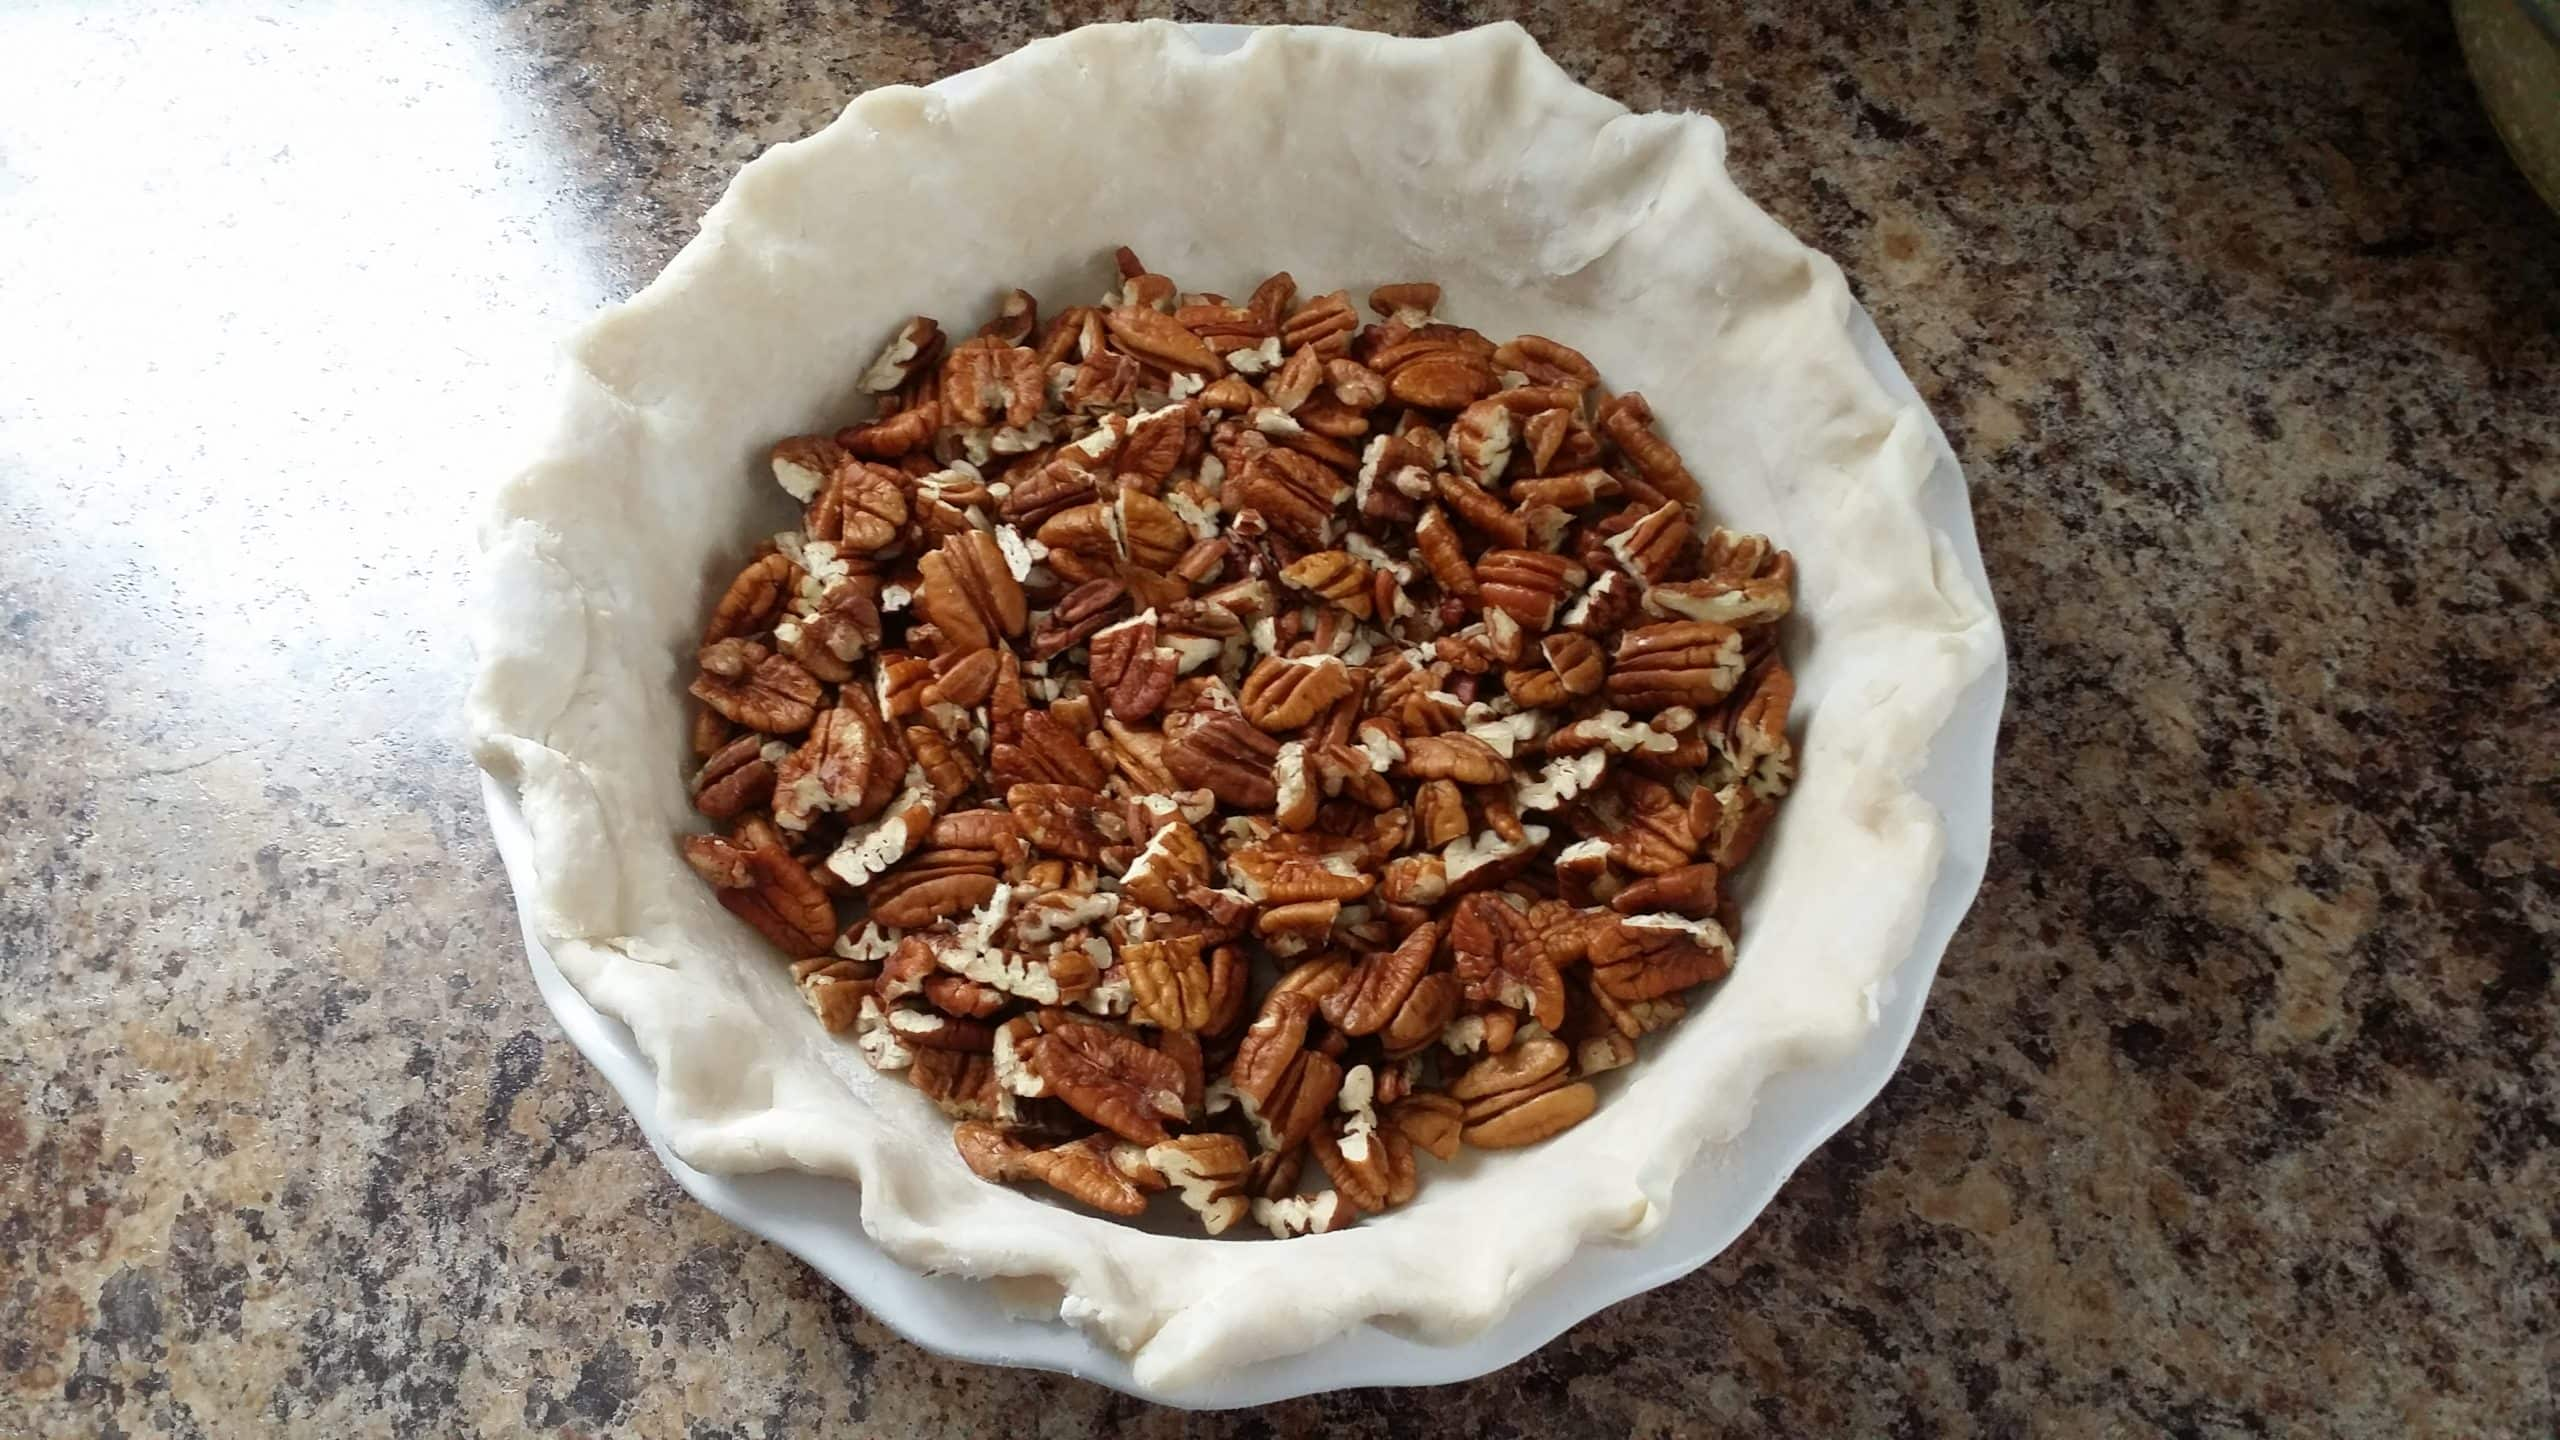 pecans in the bottom of the pie dish.